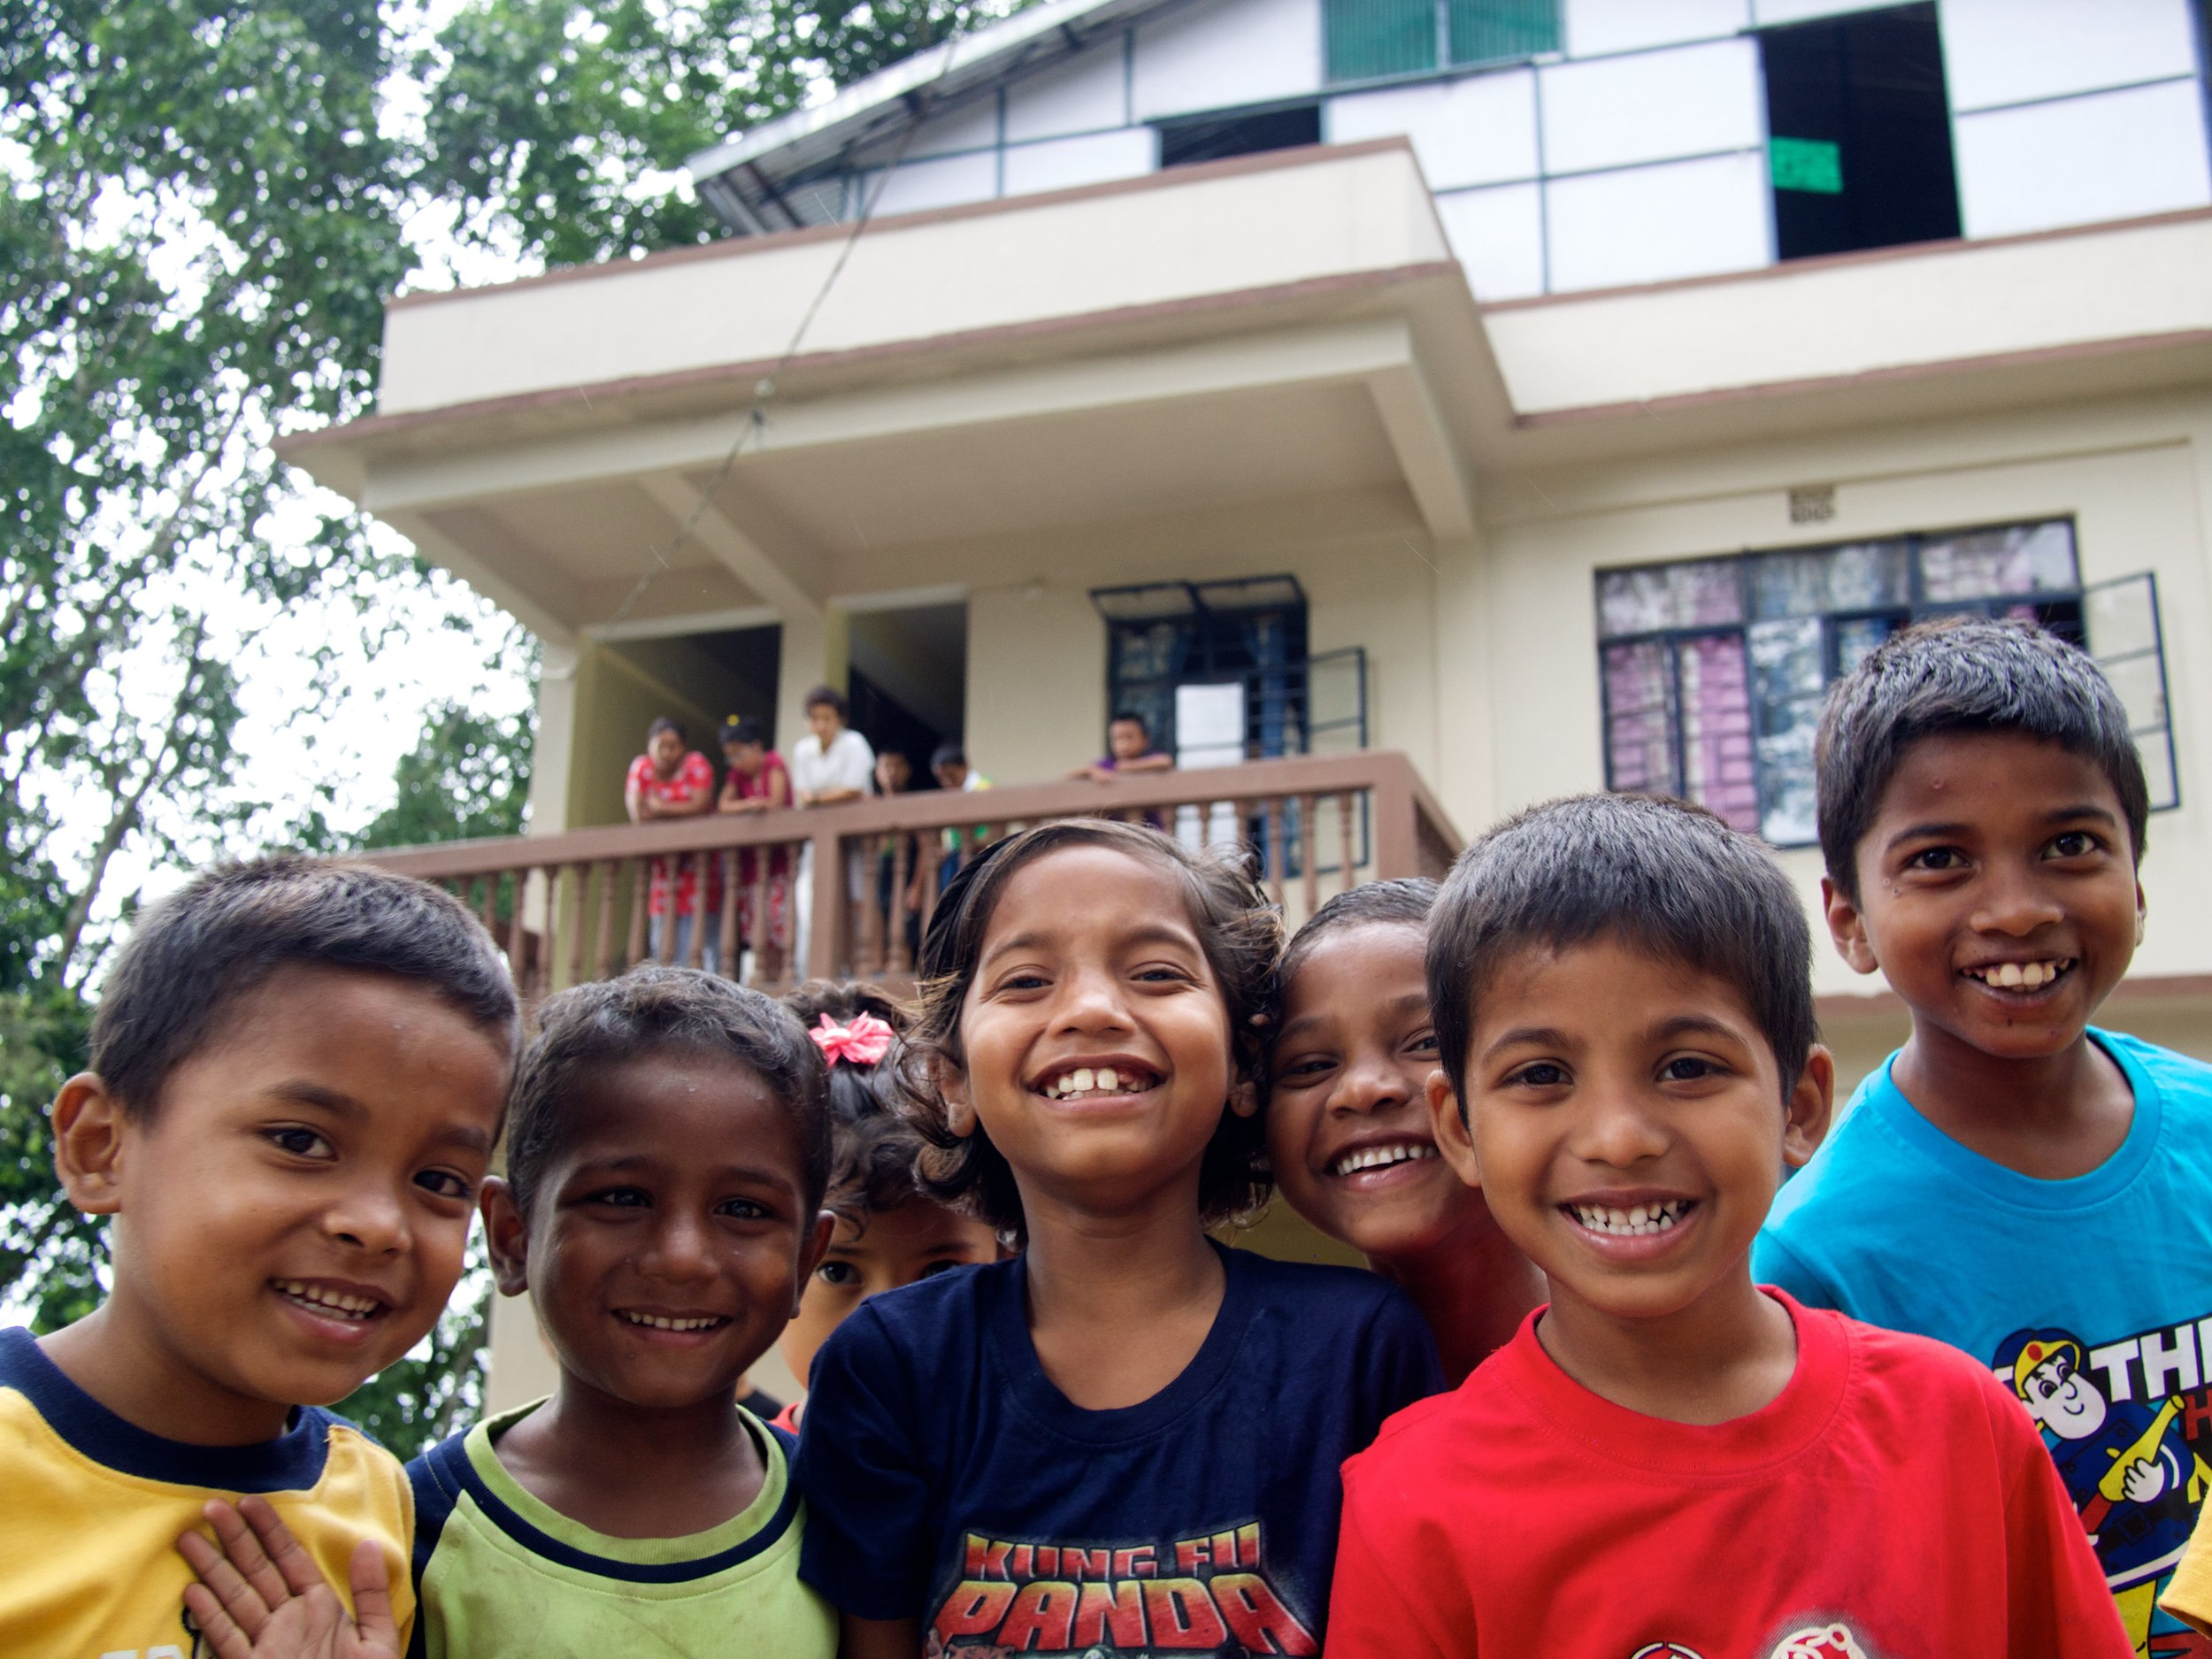 Some of the beautiful kids from Asia's Hope India. I can't wait to see them next week!